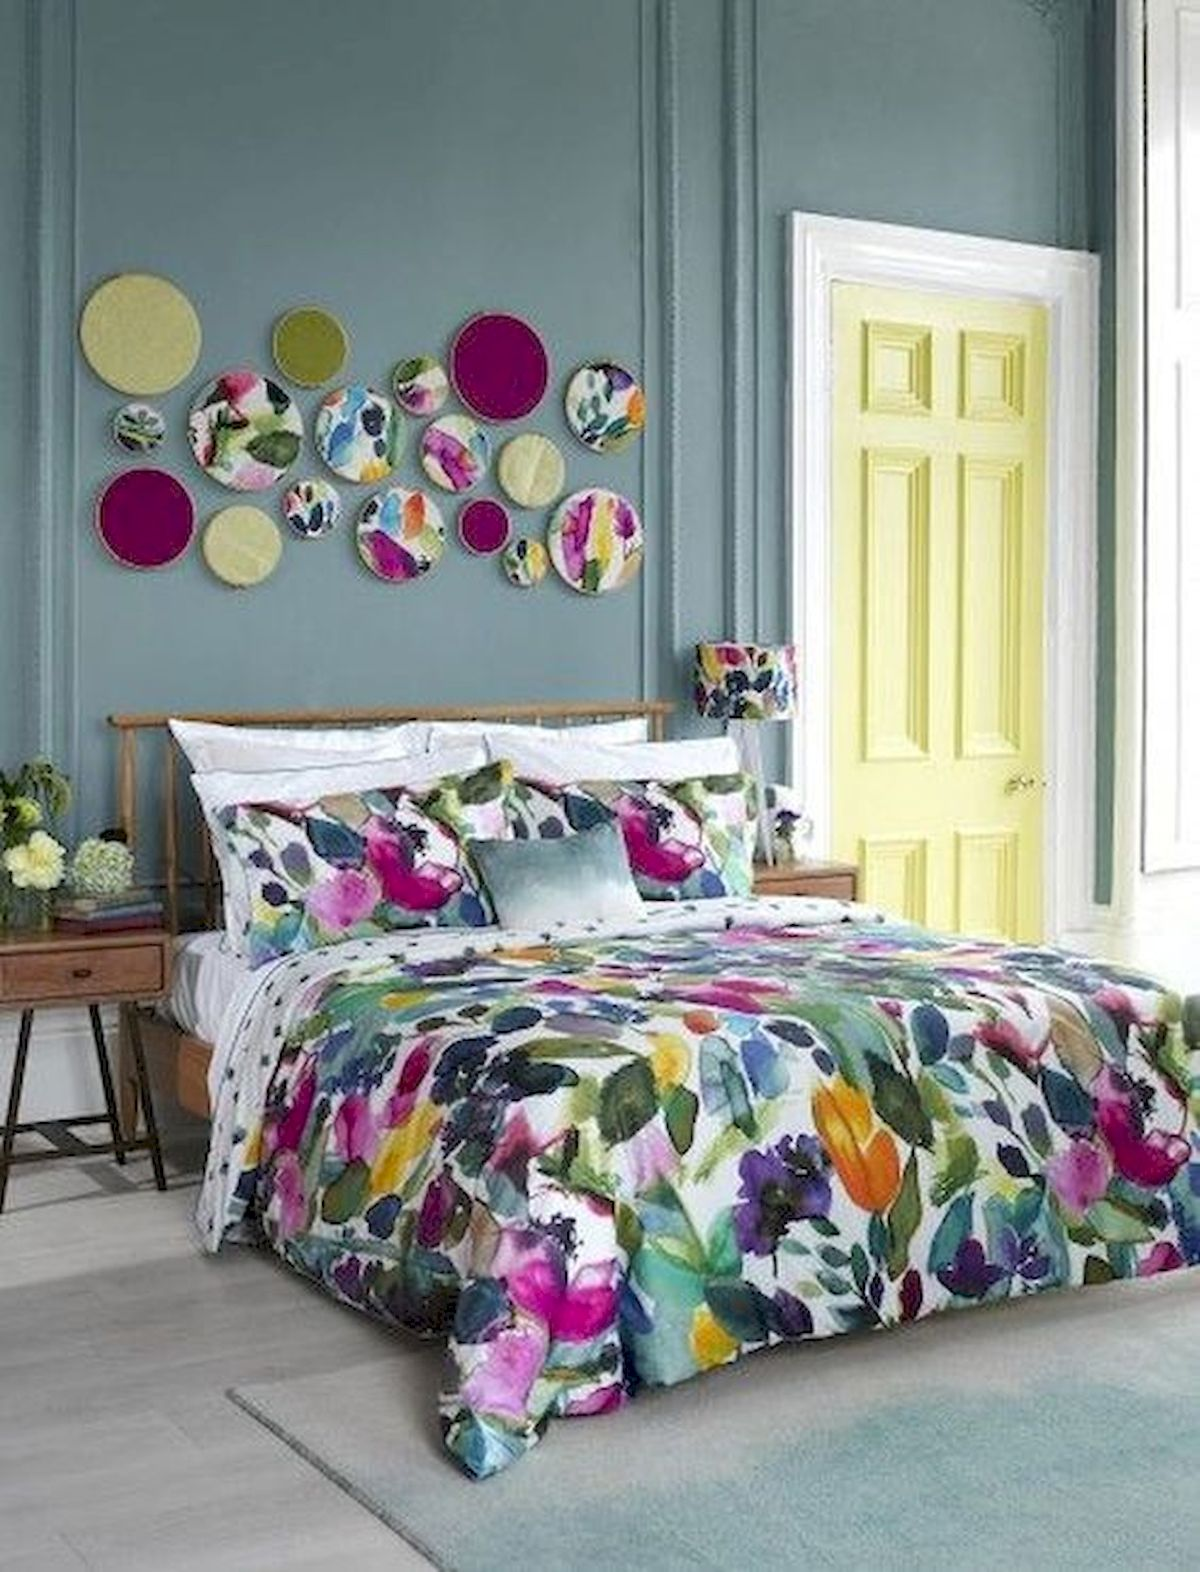 70 Beautiful DIY Colorful Bedroom Design Ideas and Remodel (35)